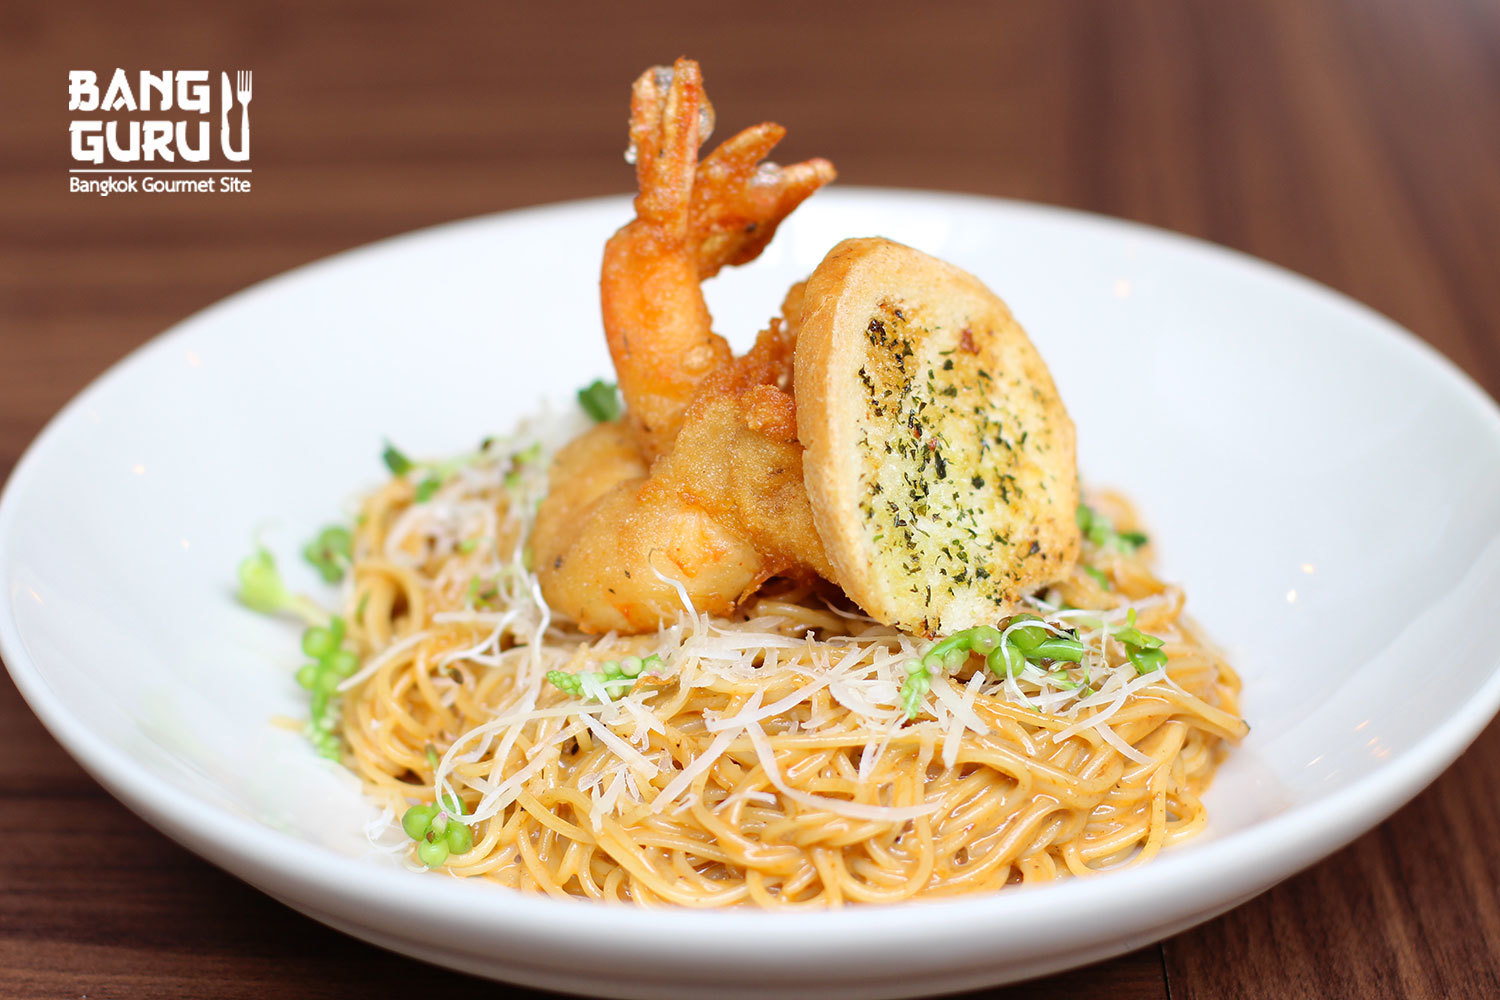 Capellini With Bisque Sauce and Battered Prawn